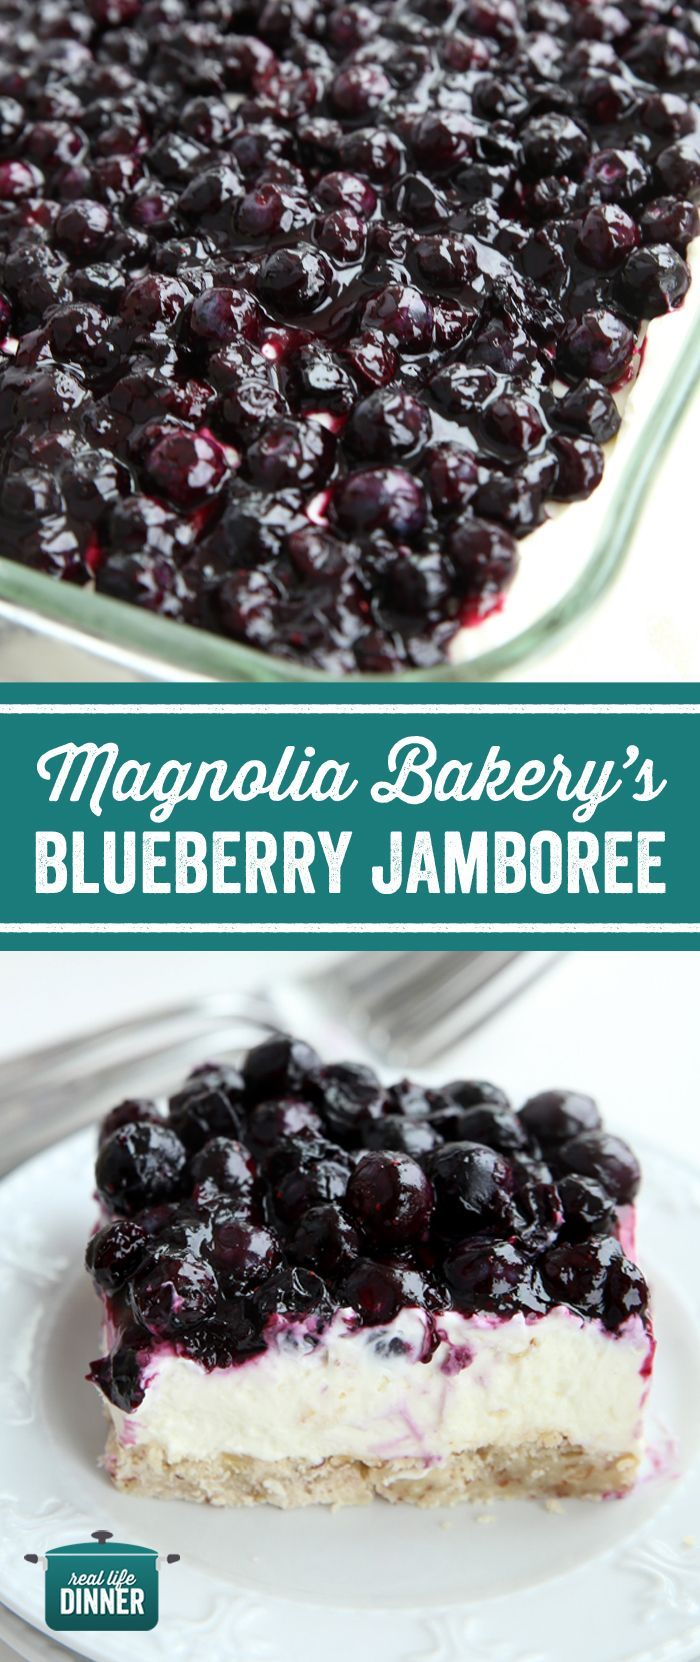 Copy Cat Recipe of Magnolia Bakery Blueberry Jamboree. A bright, delicious flavors come together to make a beautiful and memorable blueberry dessert that is perfect for Mother's Day, Easter and other Spring and Summer special occasions.